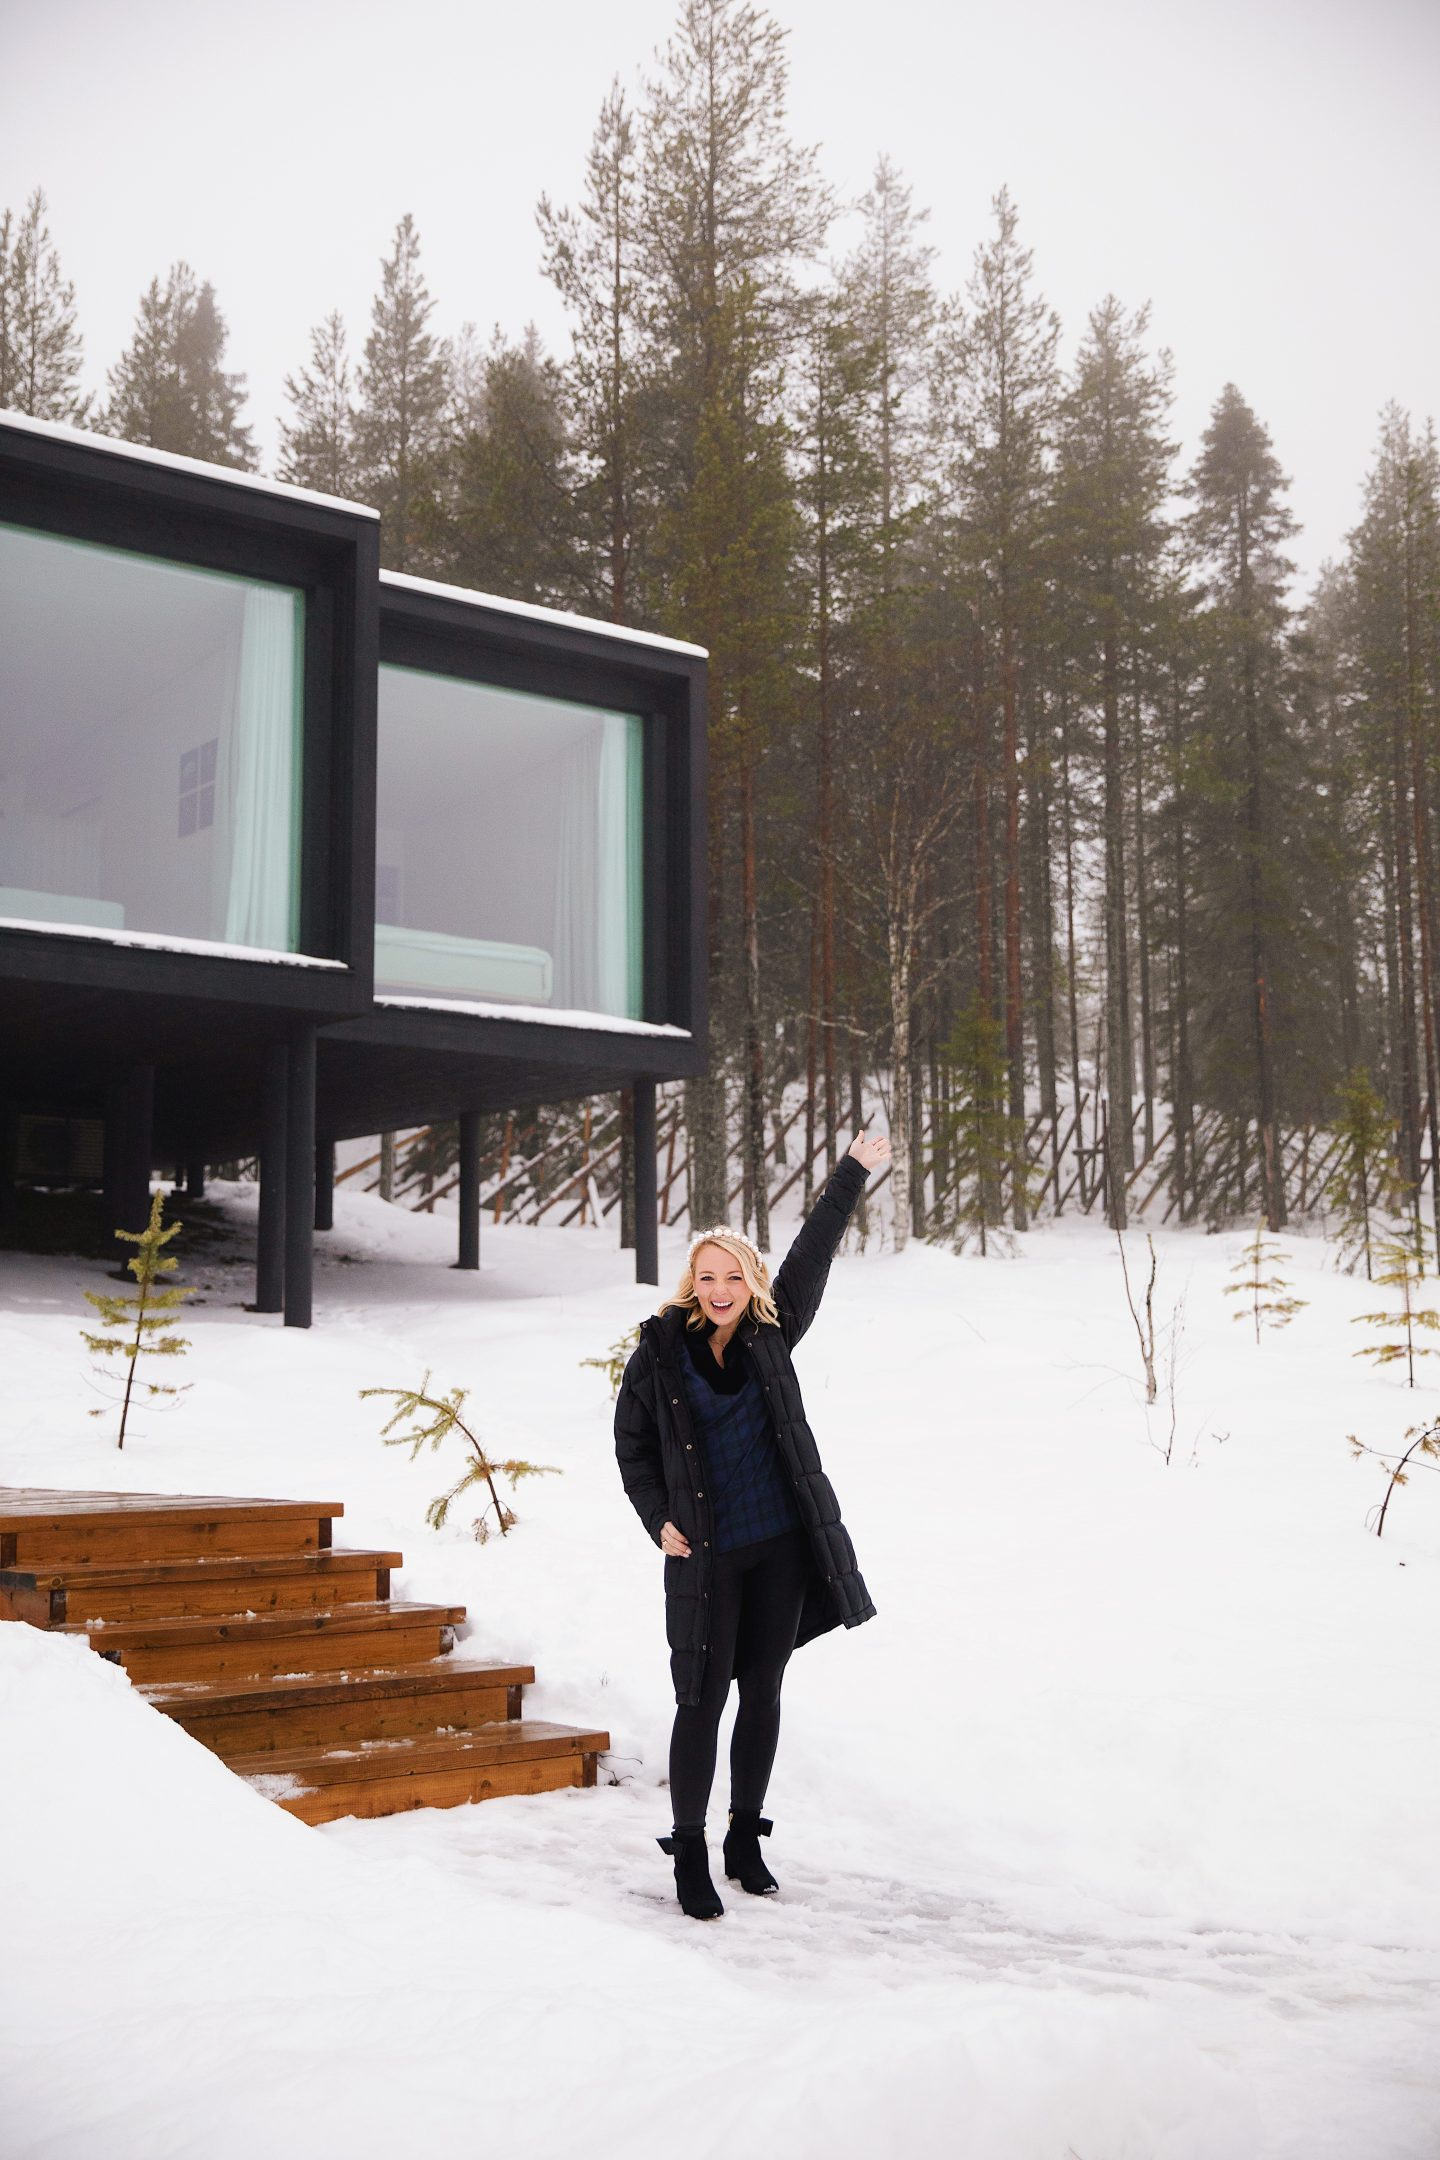 Travel guide and travel diary to Lapland, Finland and Rovaniemi, Finland with the Arctic Treehouse Hotel Review